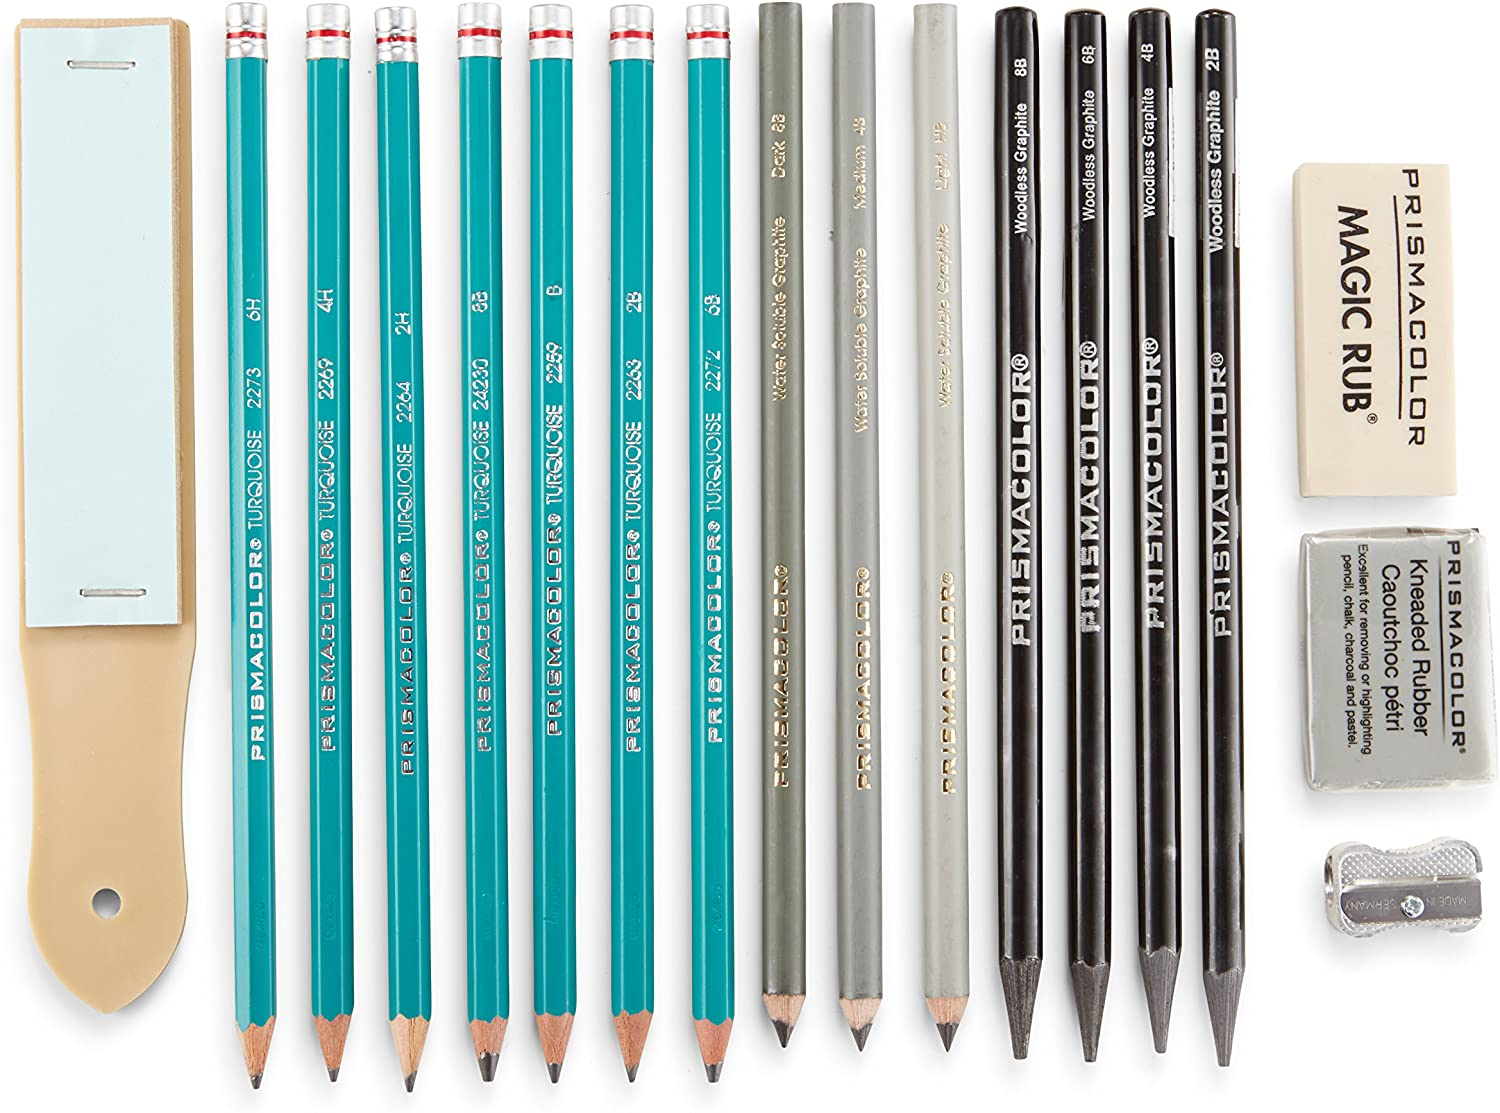 Prismacolor Premier Graphite Pencils with Erasers and Sharpeners, 18 Piece Drawing Pencil Set, Sketching Pencils : Arts And Crafts Supplies : Office Products